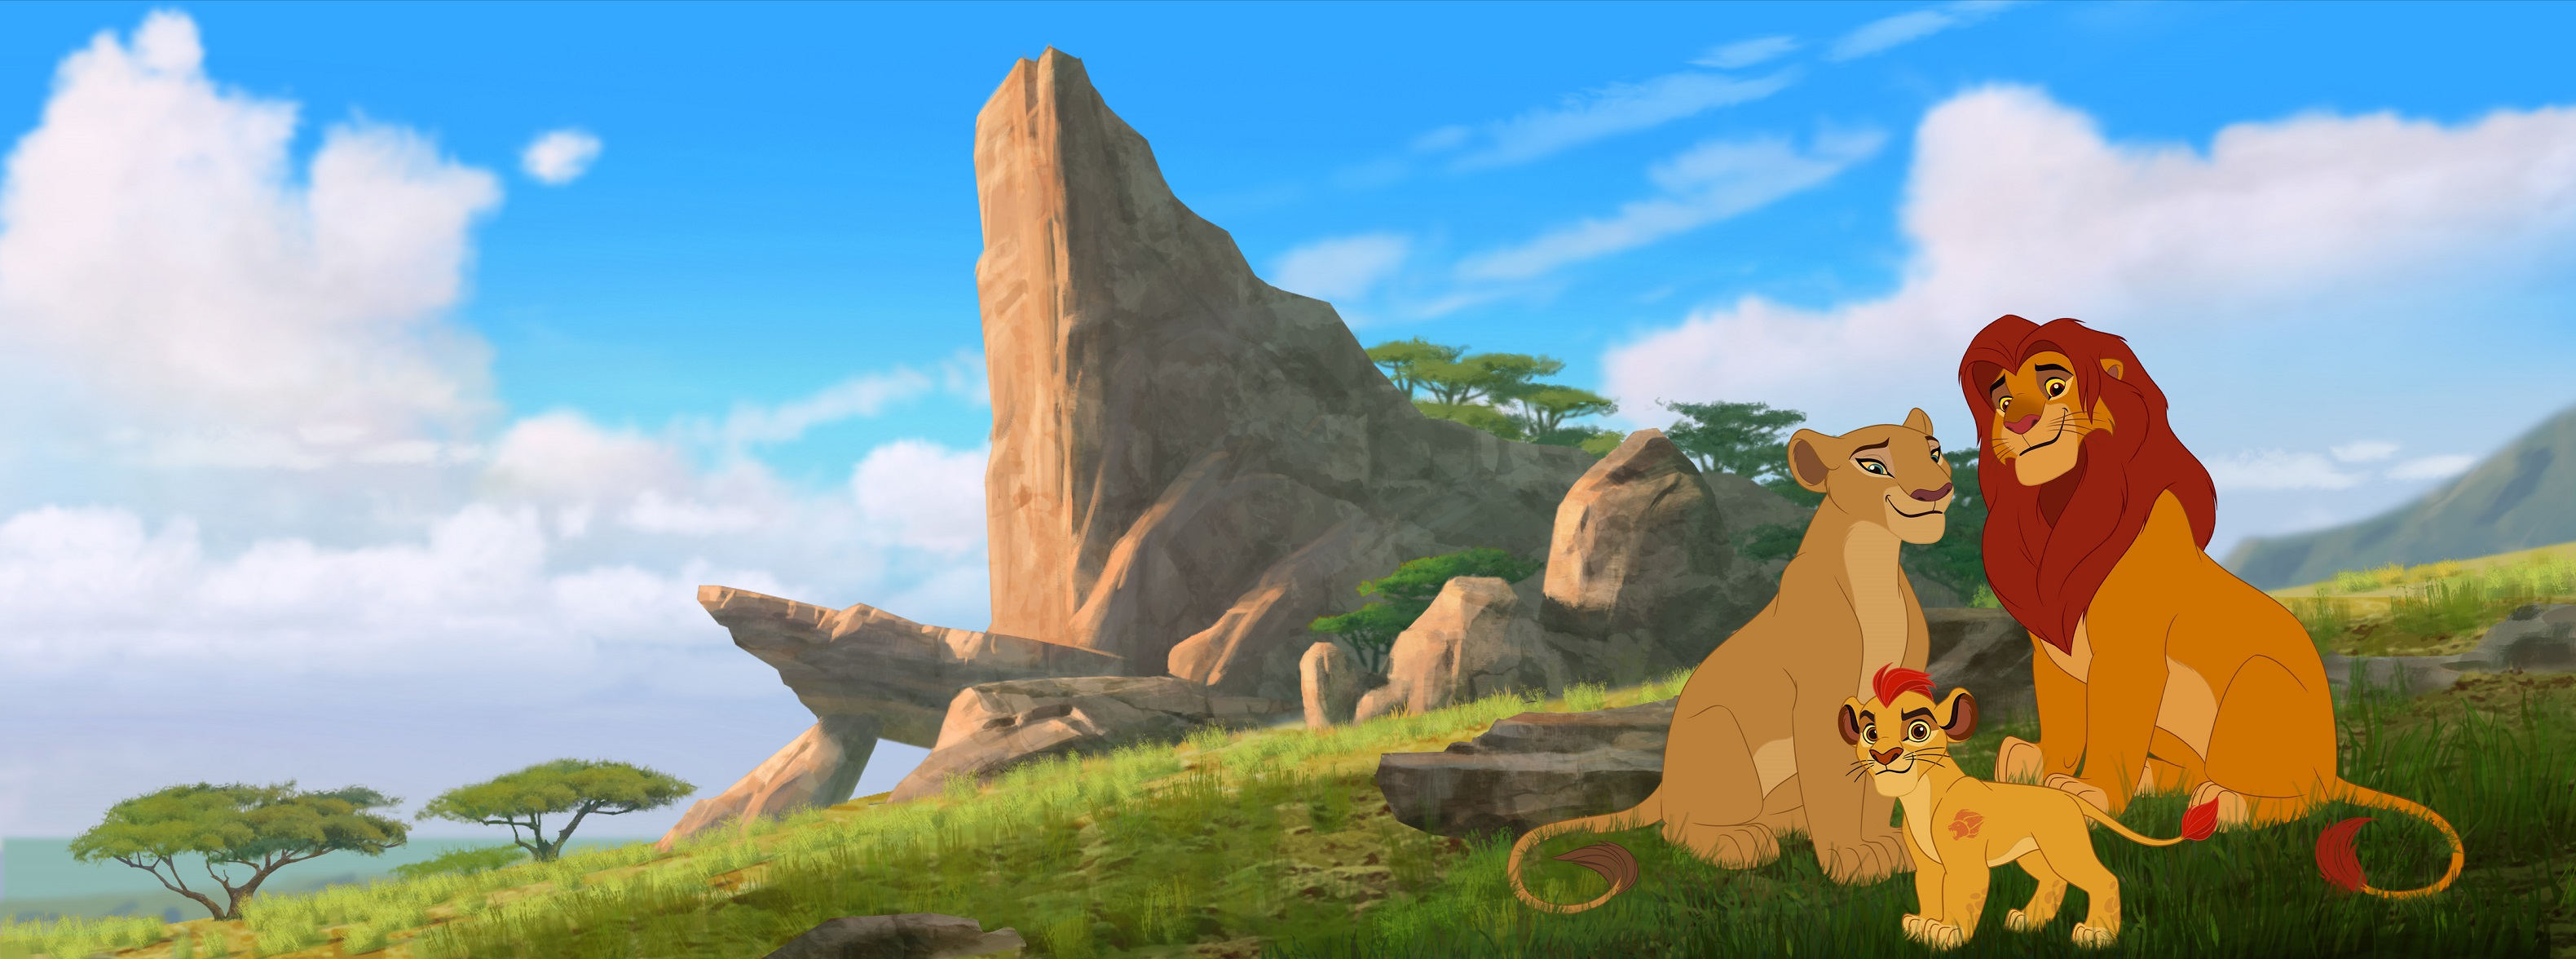 """THE LION GUARD - The epic storytelling of Disney's """"The Lion King"""" continues with """"The Lion Guard: Return of the Roar,"""" a primetime television movie event starring Rob Lowe, Gabrielle Union and James Earl Jones, reprising his iconic role as Mufasa. Premiering this November on Disney Channel, the movie follows Kion, the second-born cub of Simba and Nala, as he assumes the role of leader of the Lion Guard, a team of animals tasked with preserving the Pride Lands. """"The Lion Guard"""" television series will premiere in early 2016 on Disney Channels and Disney Junior channels around the globe. (Disney Junior) NALA, KION, SIMBA"""